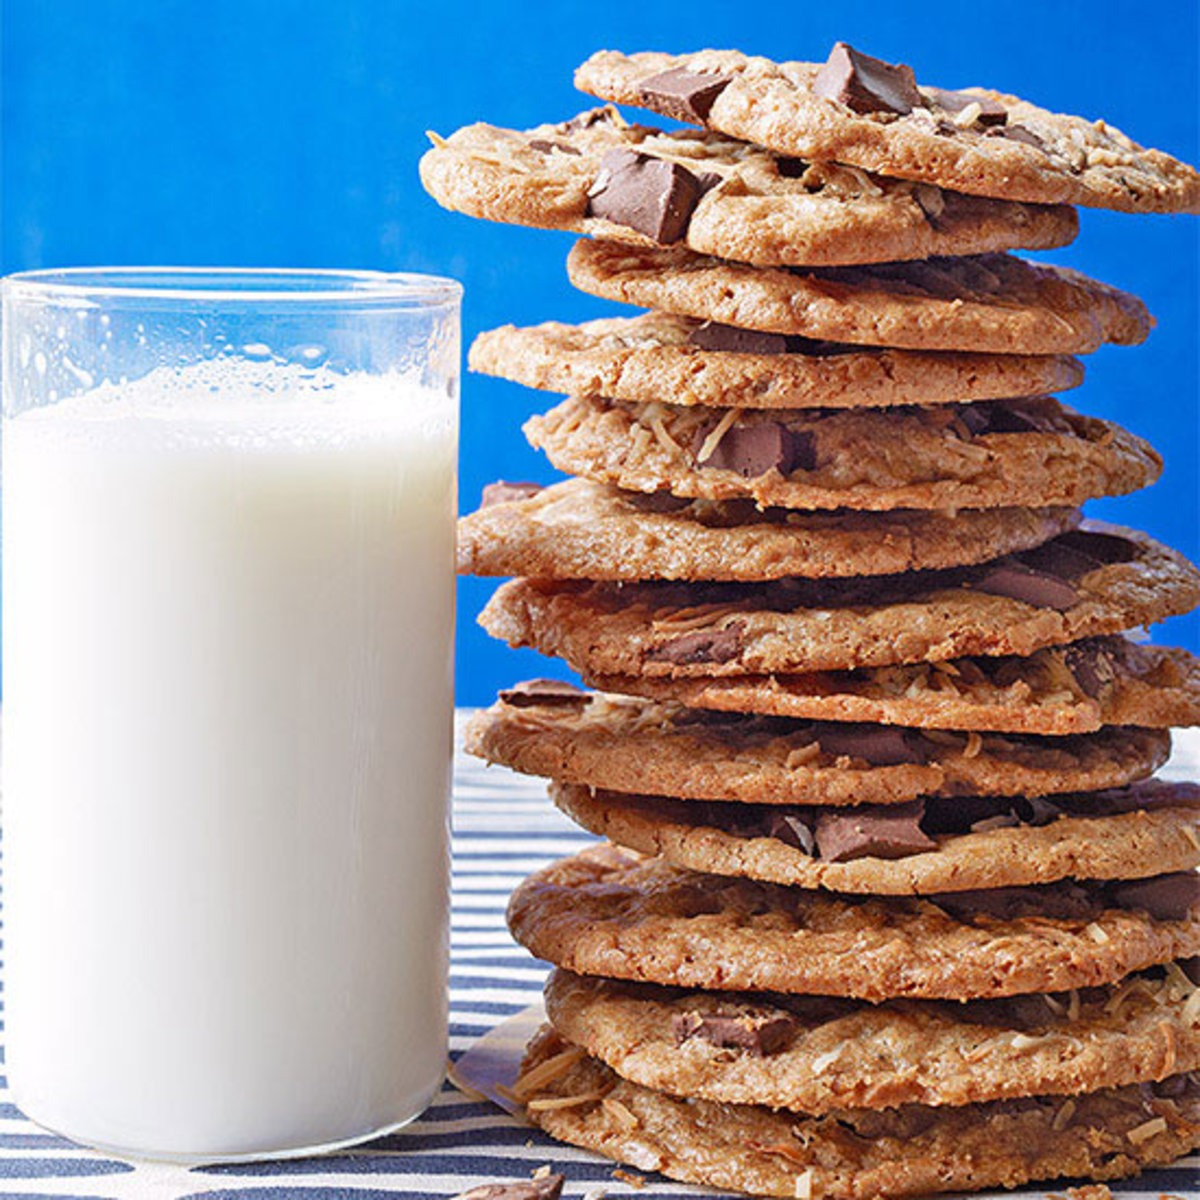 11 Ways To Celebrate National Chocolate Chip Cookie Day